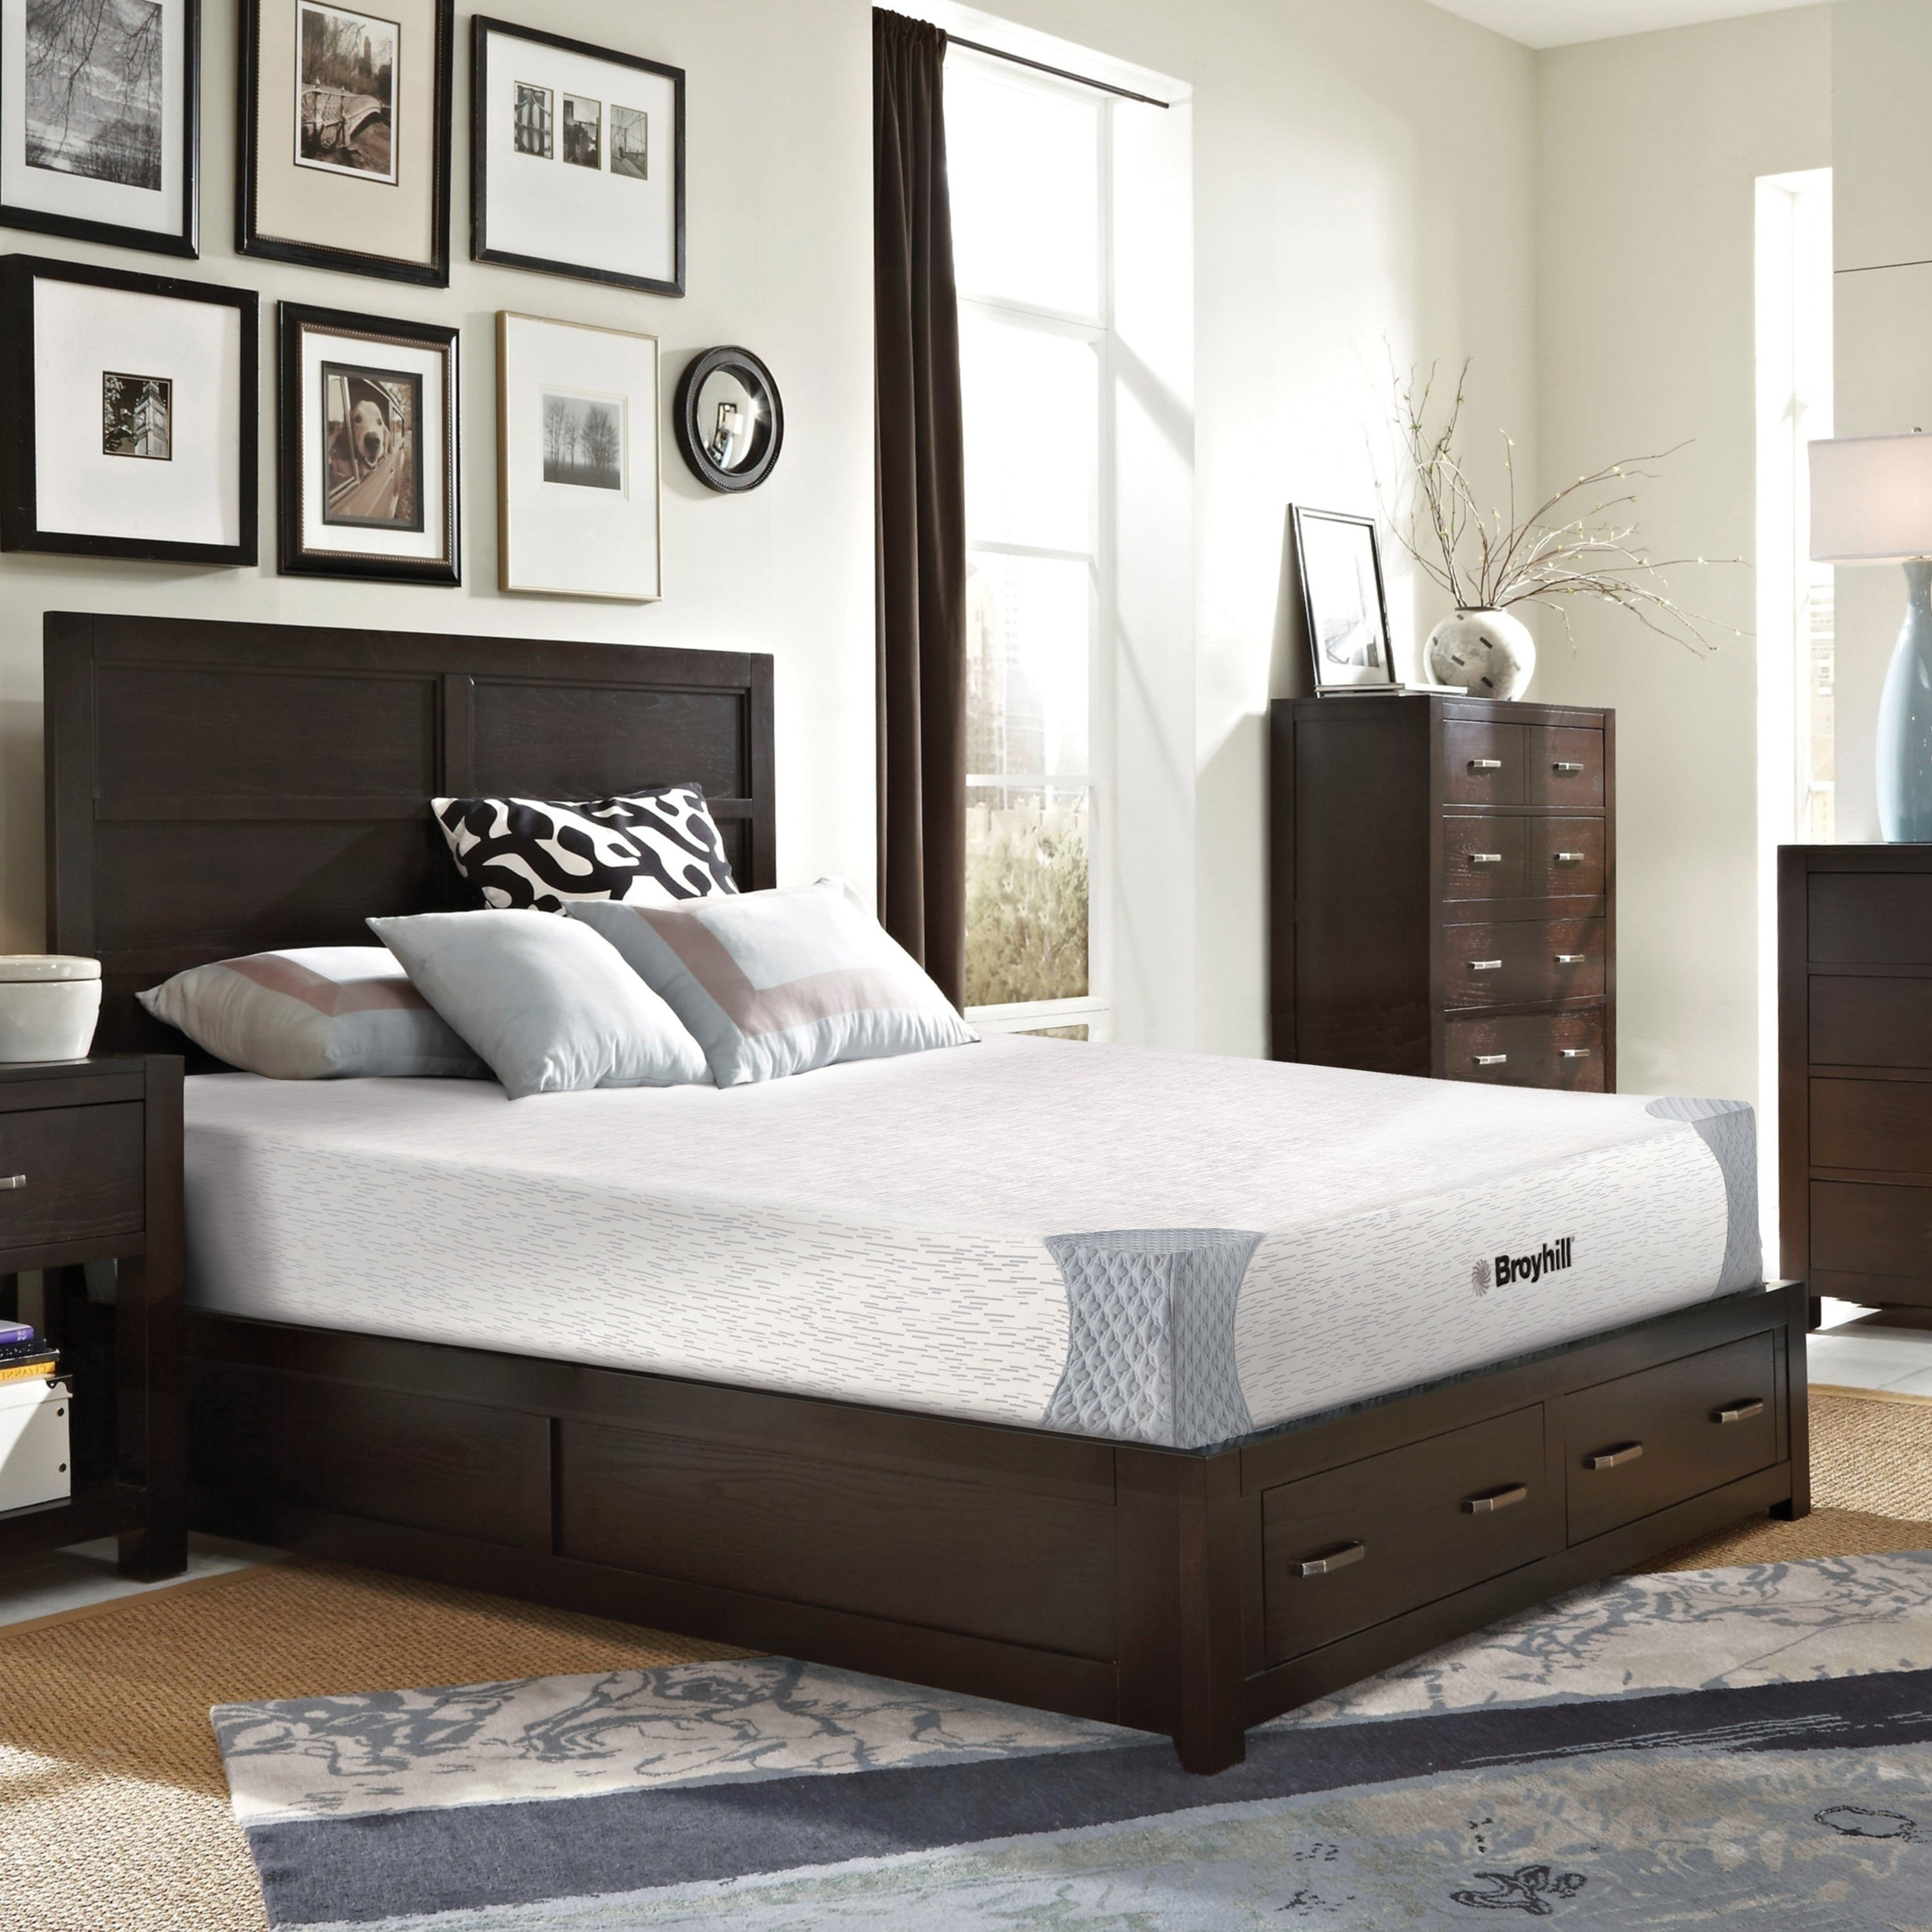 Broyhill King Bedroom Set Awesome Buy King Size Firm Broyhill Mattresses Line at Overstock